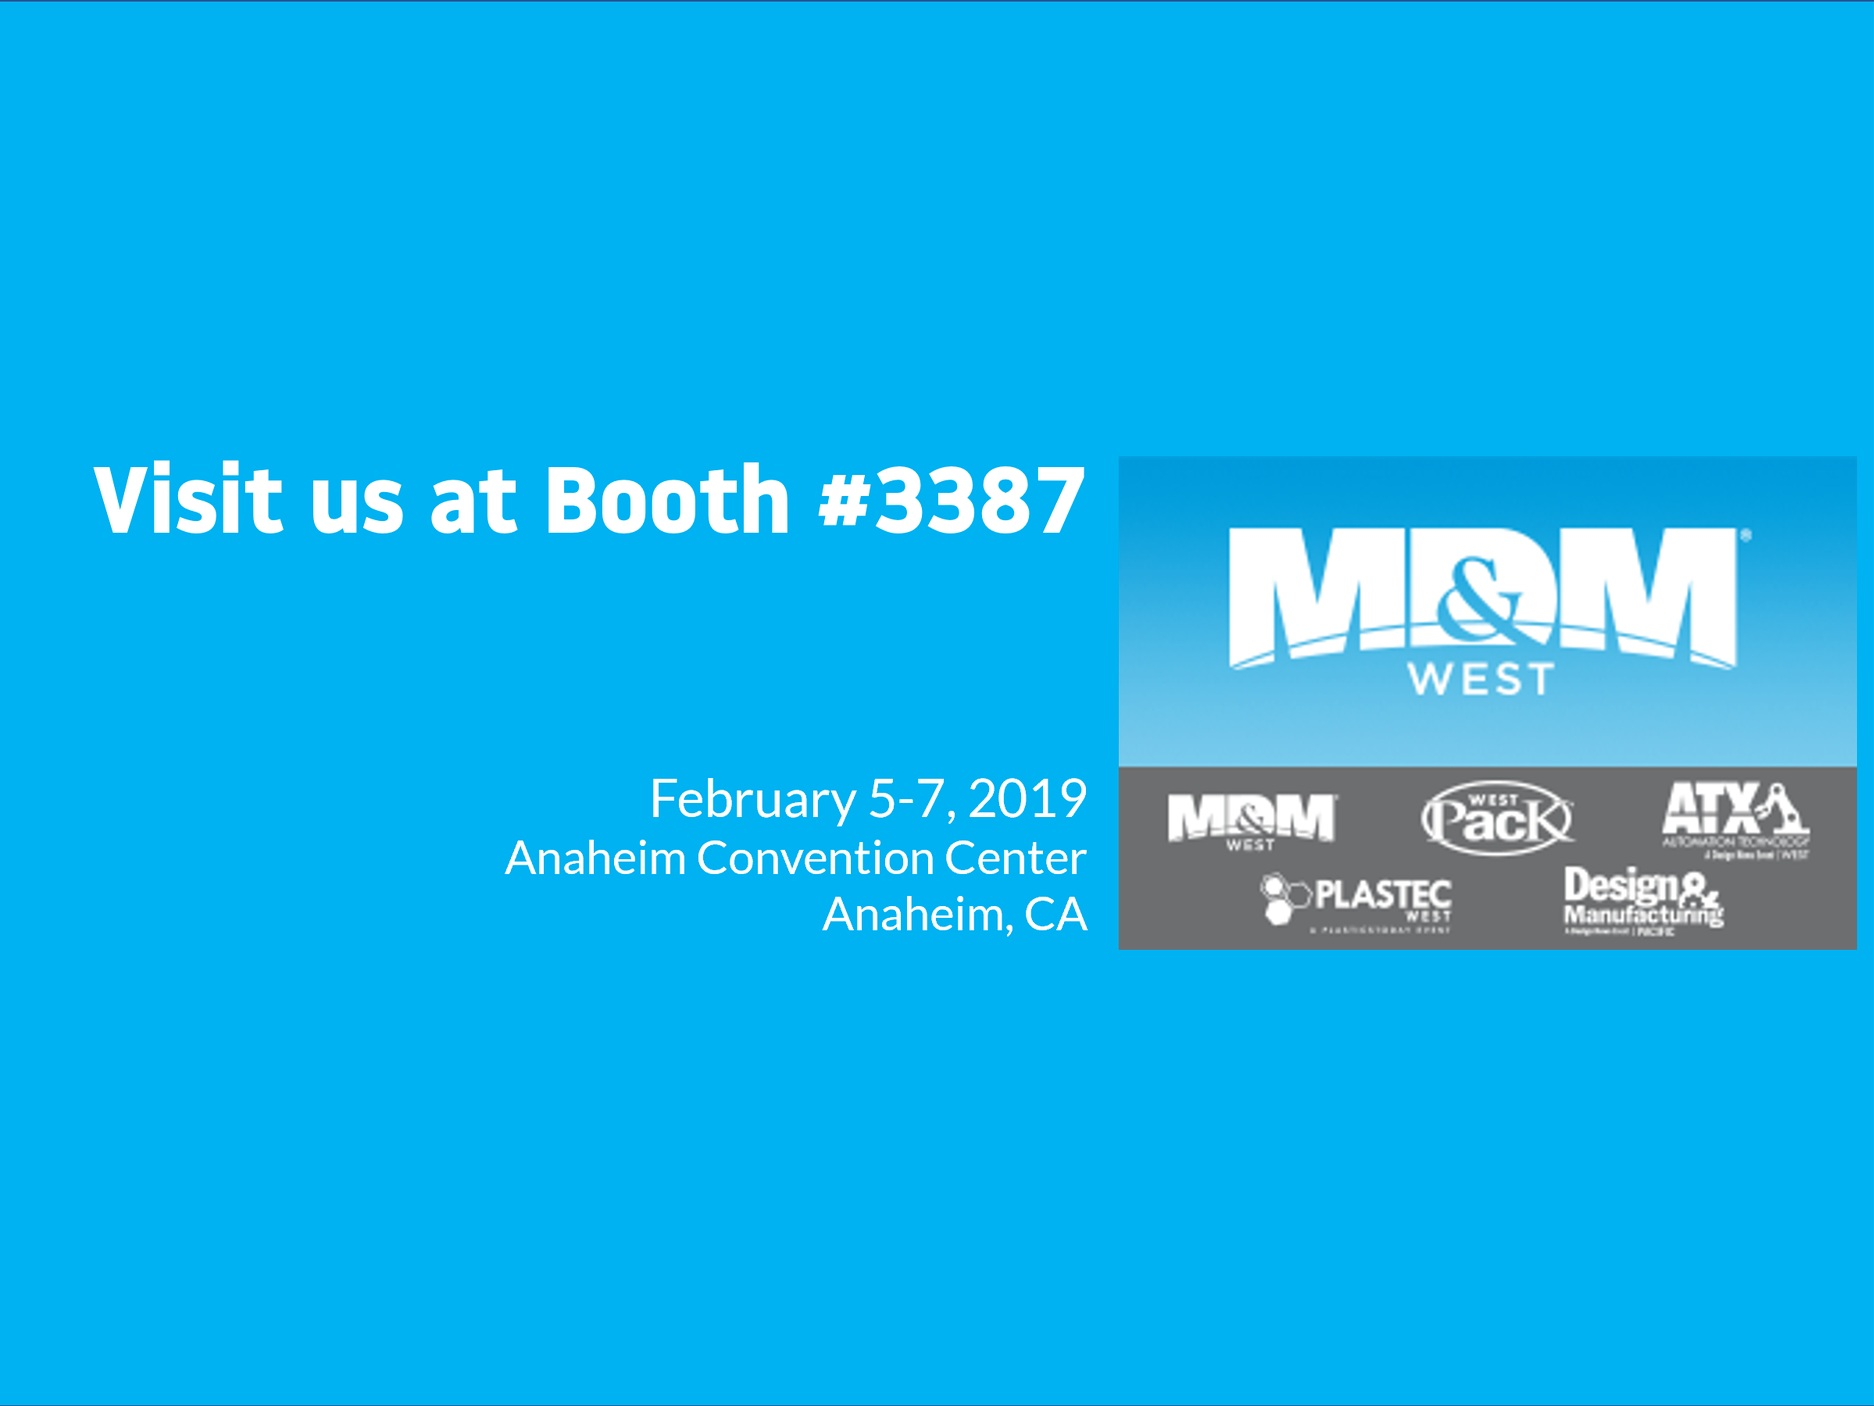 Visit Linx at MD&M West! - Visitus at Booth #3387February 5-7, 2019Anaheim Convention Center